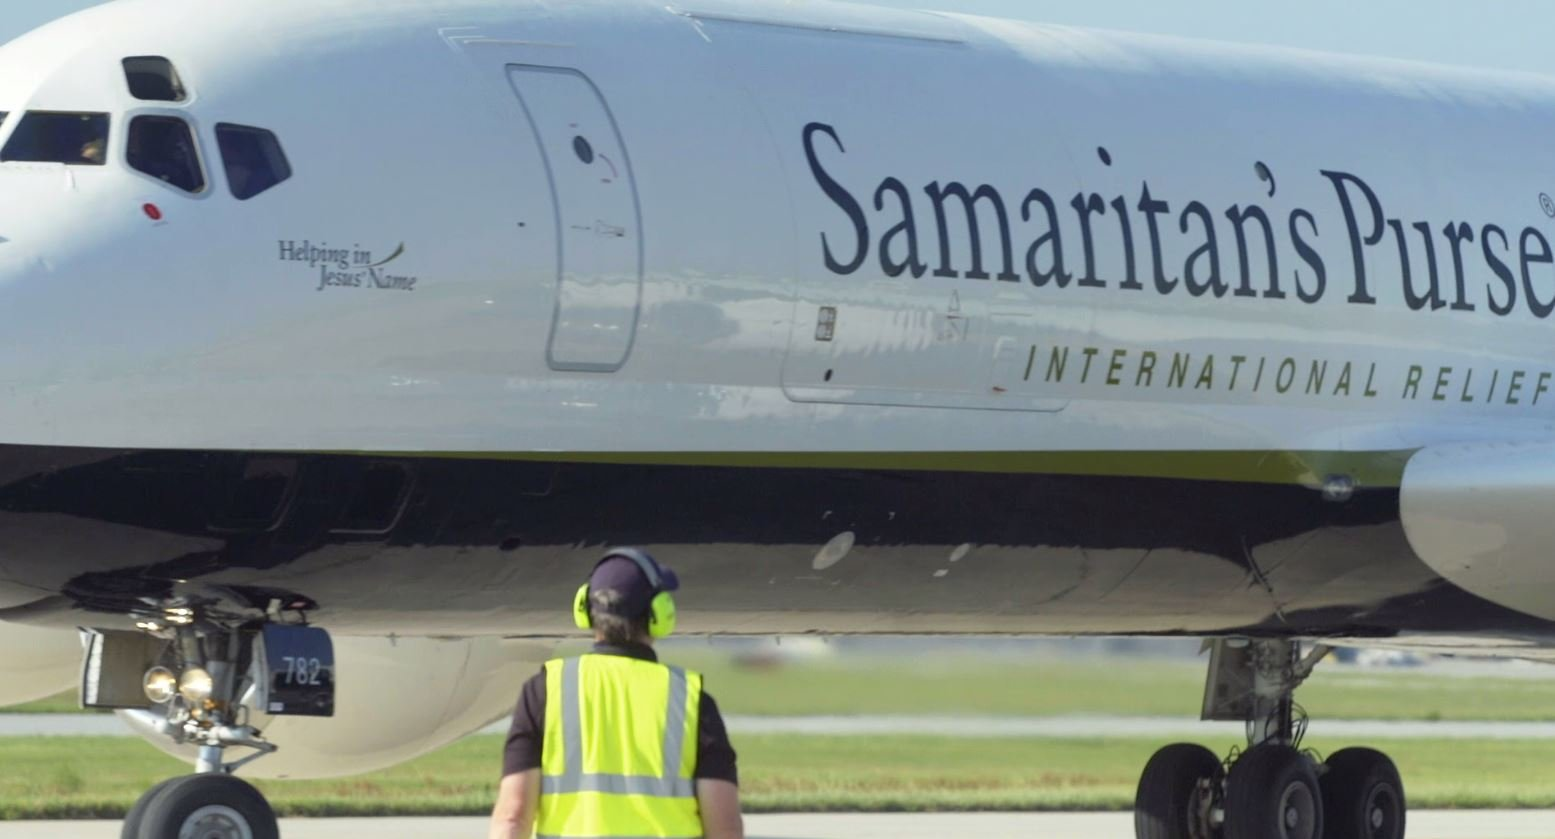 Samaritan's Purse cargo plane (Provided)